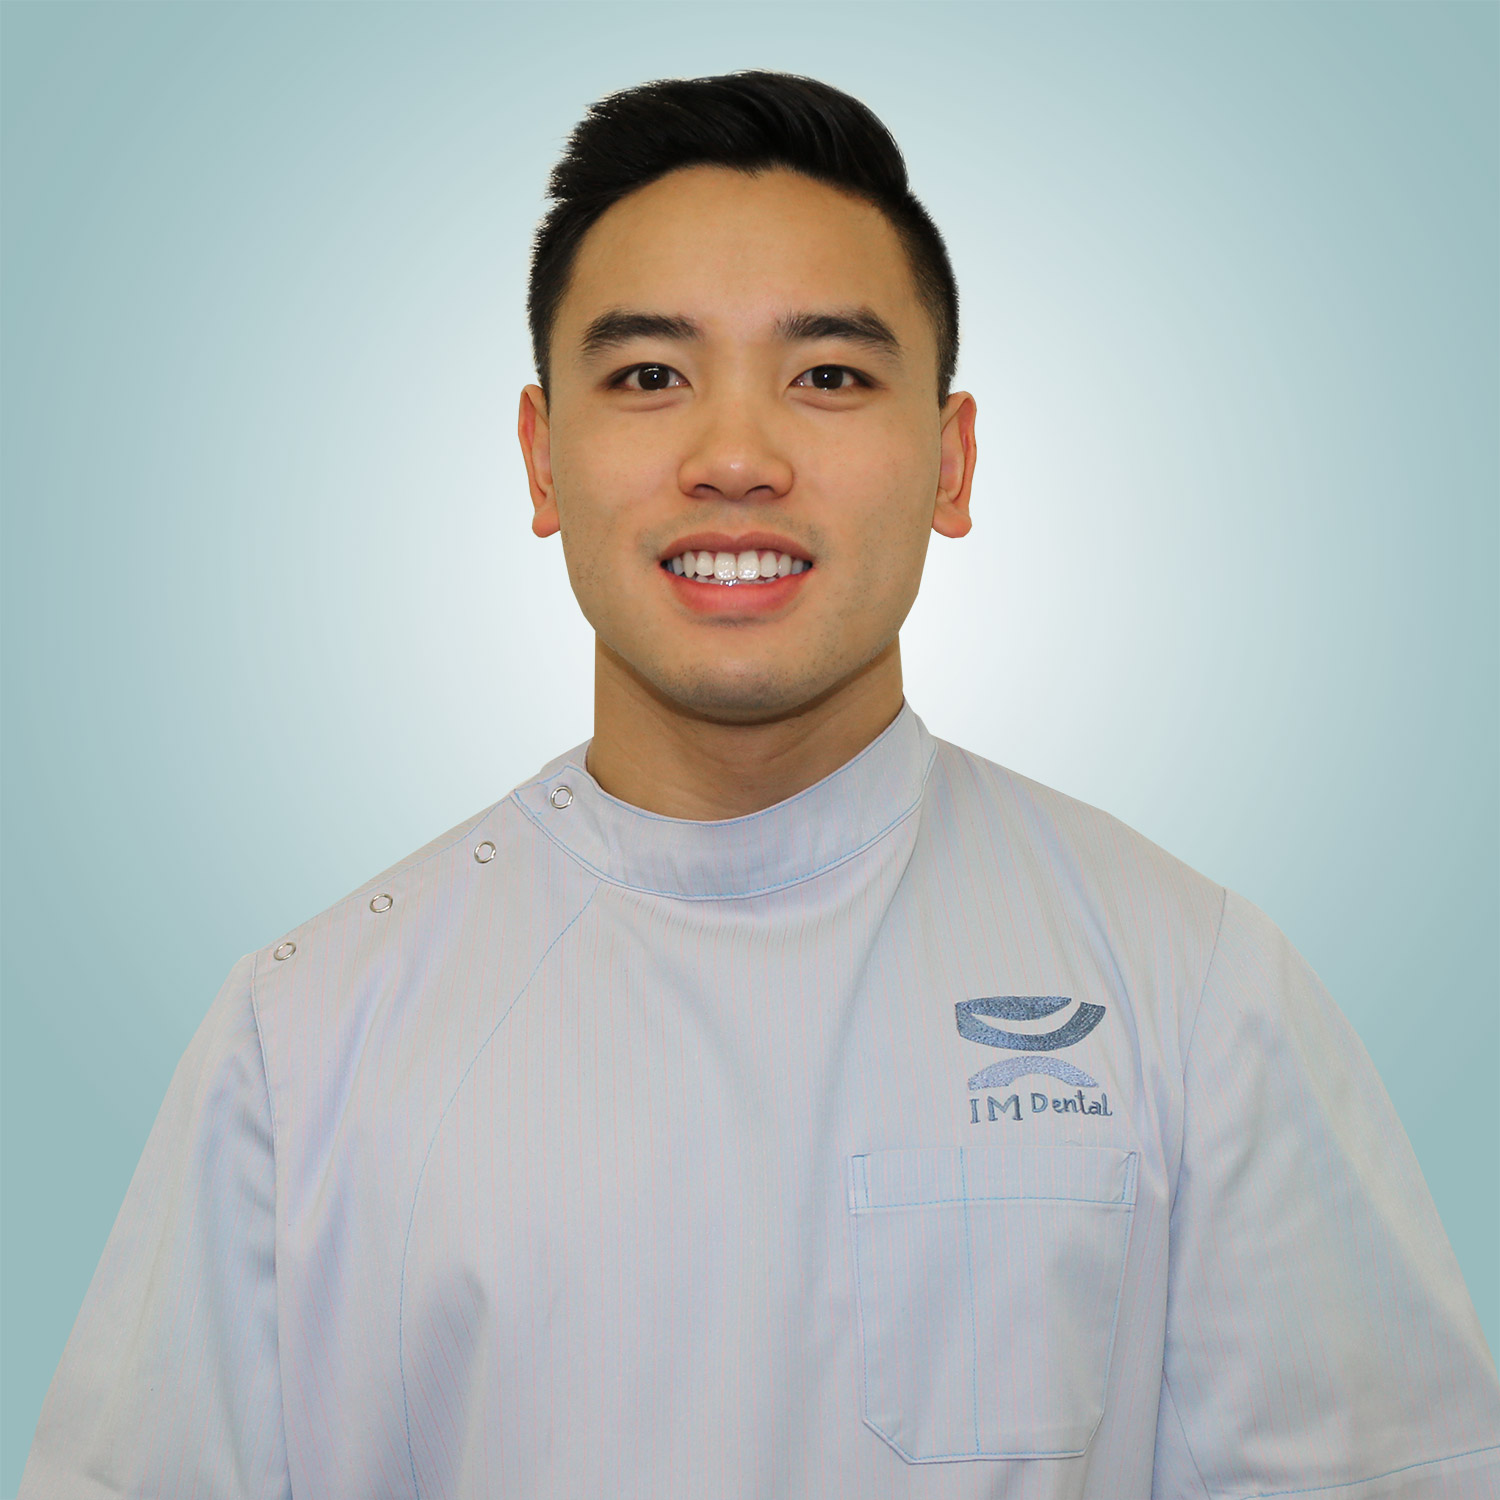 Dr Kevin Lam